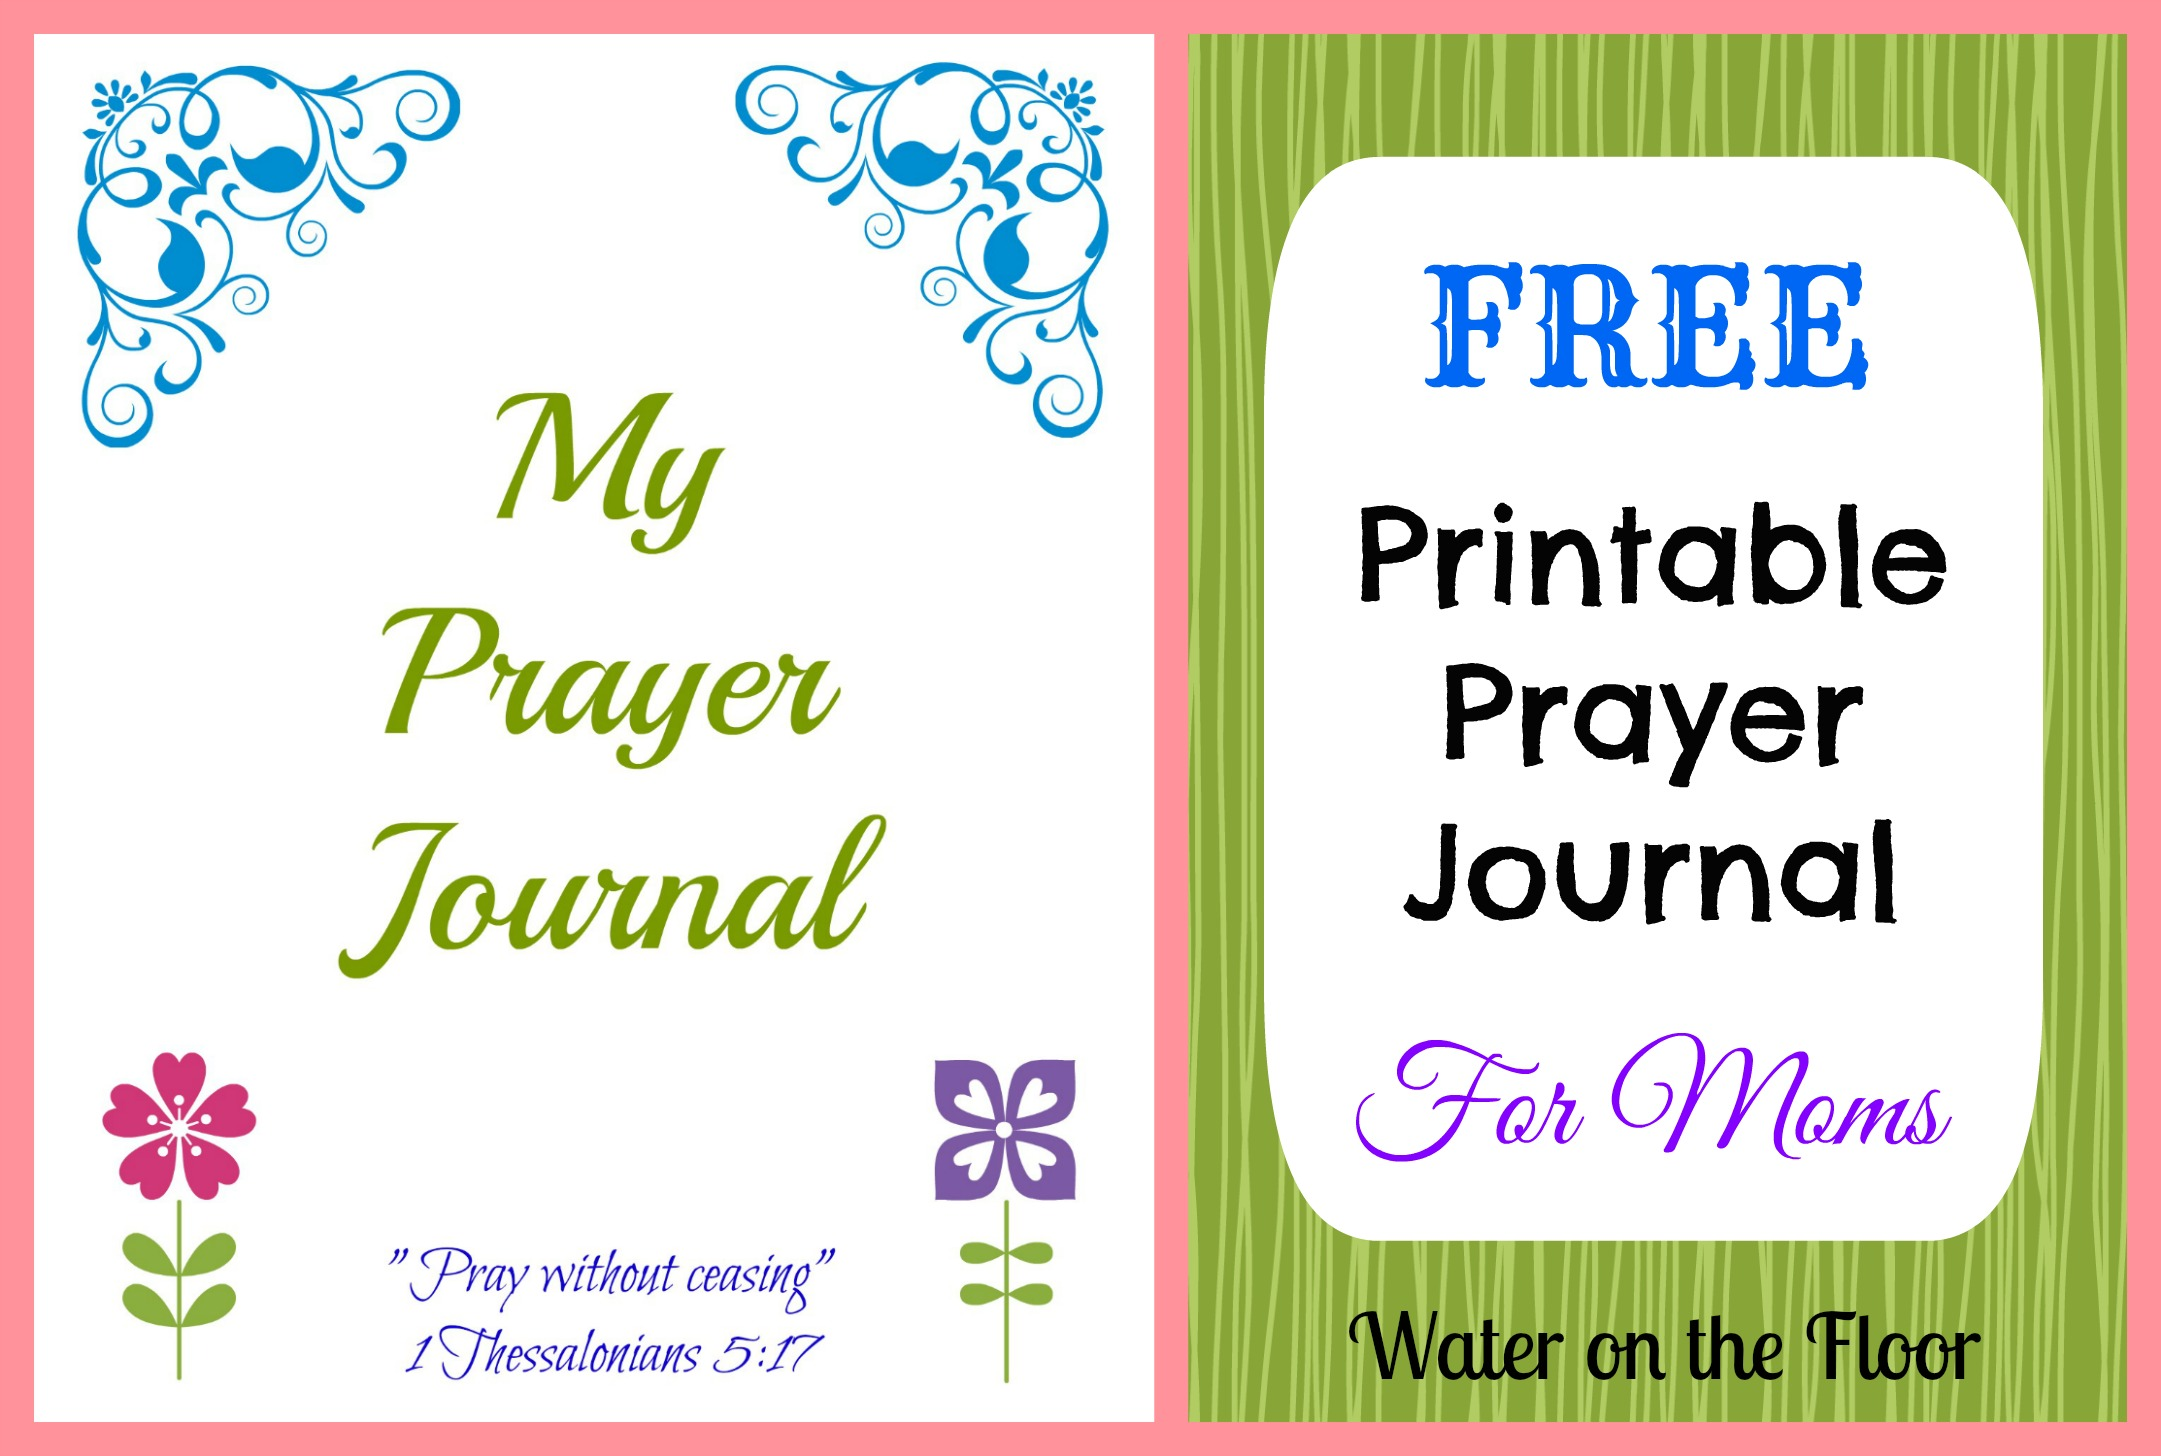 prayer book template - free printable prayer journal for moms water on the floor